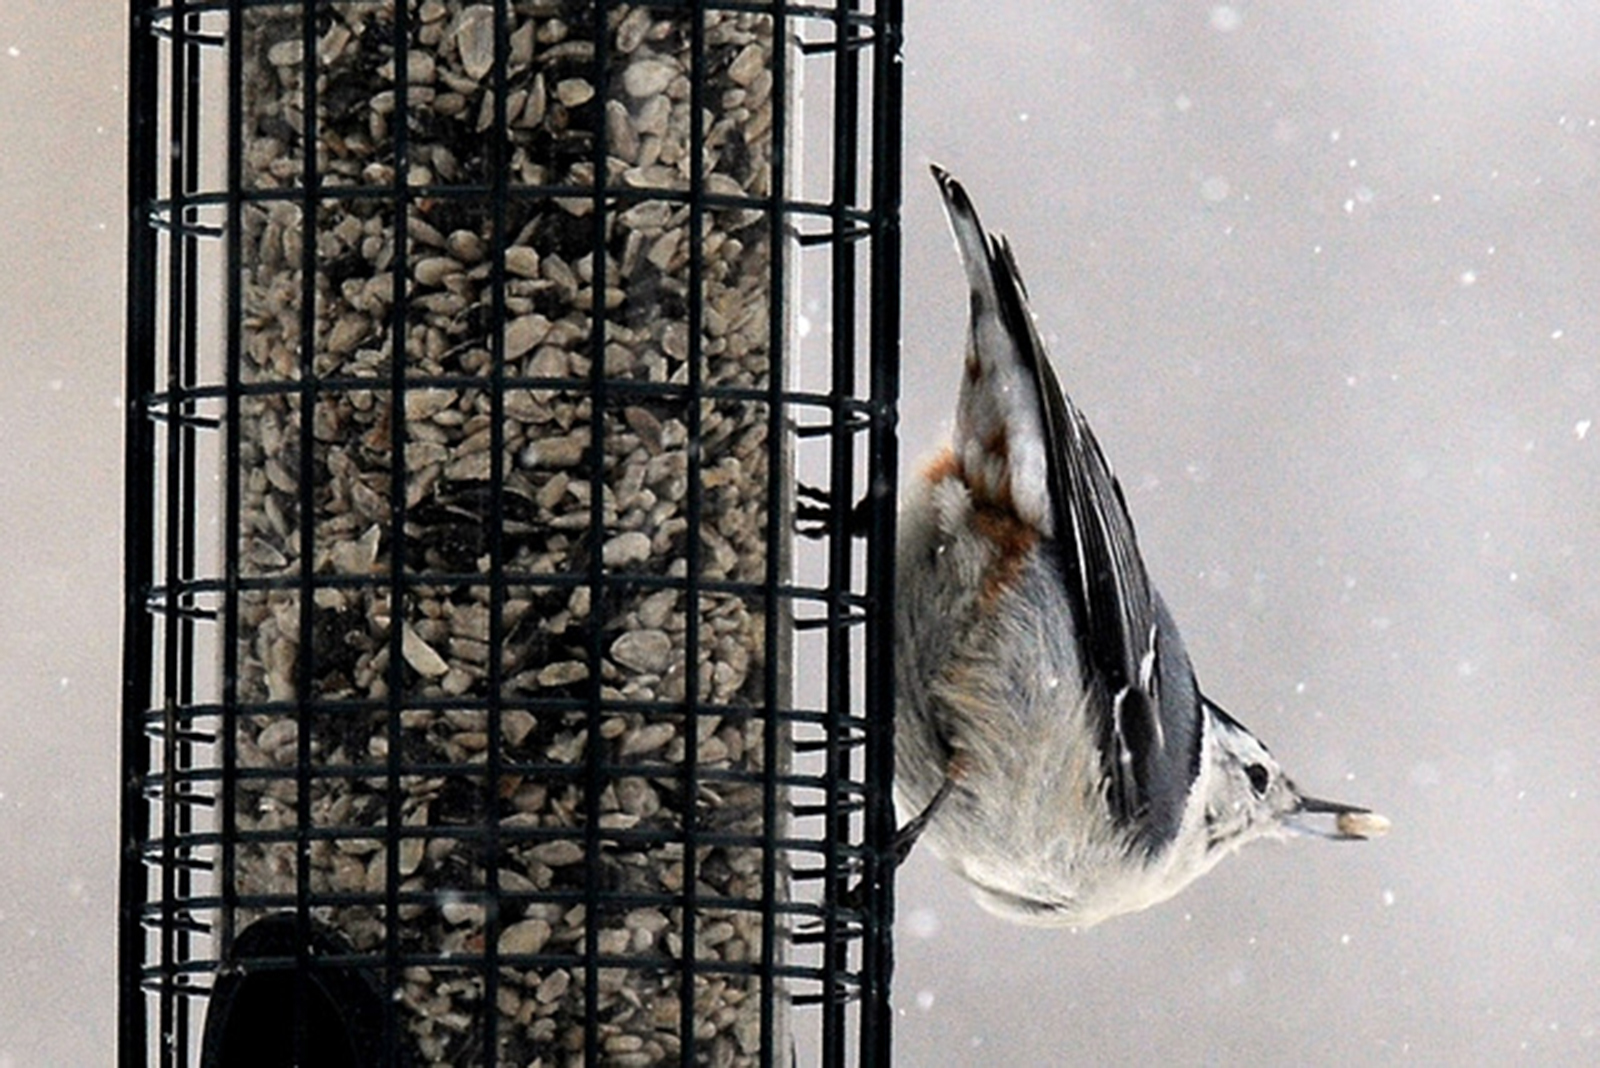 Nuthatches perch head down to feed.